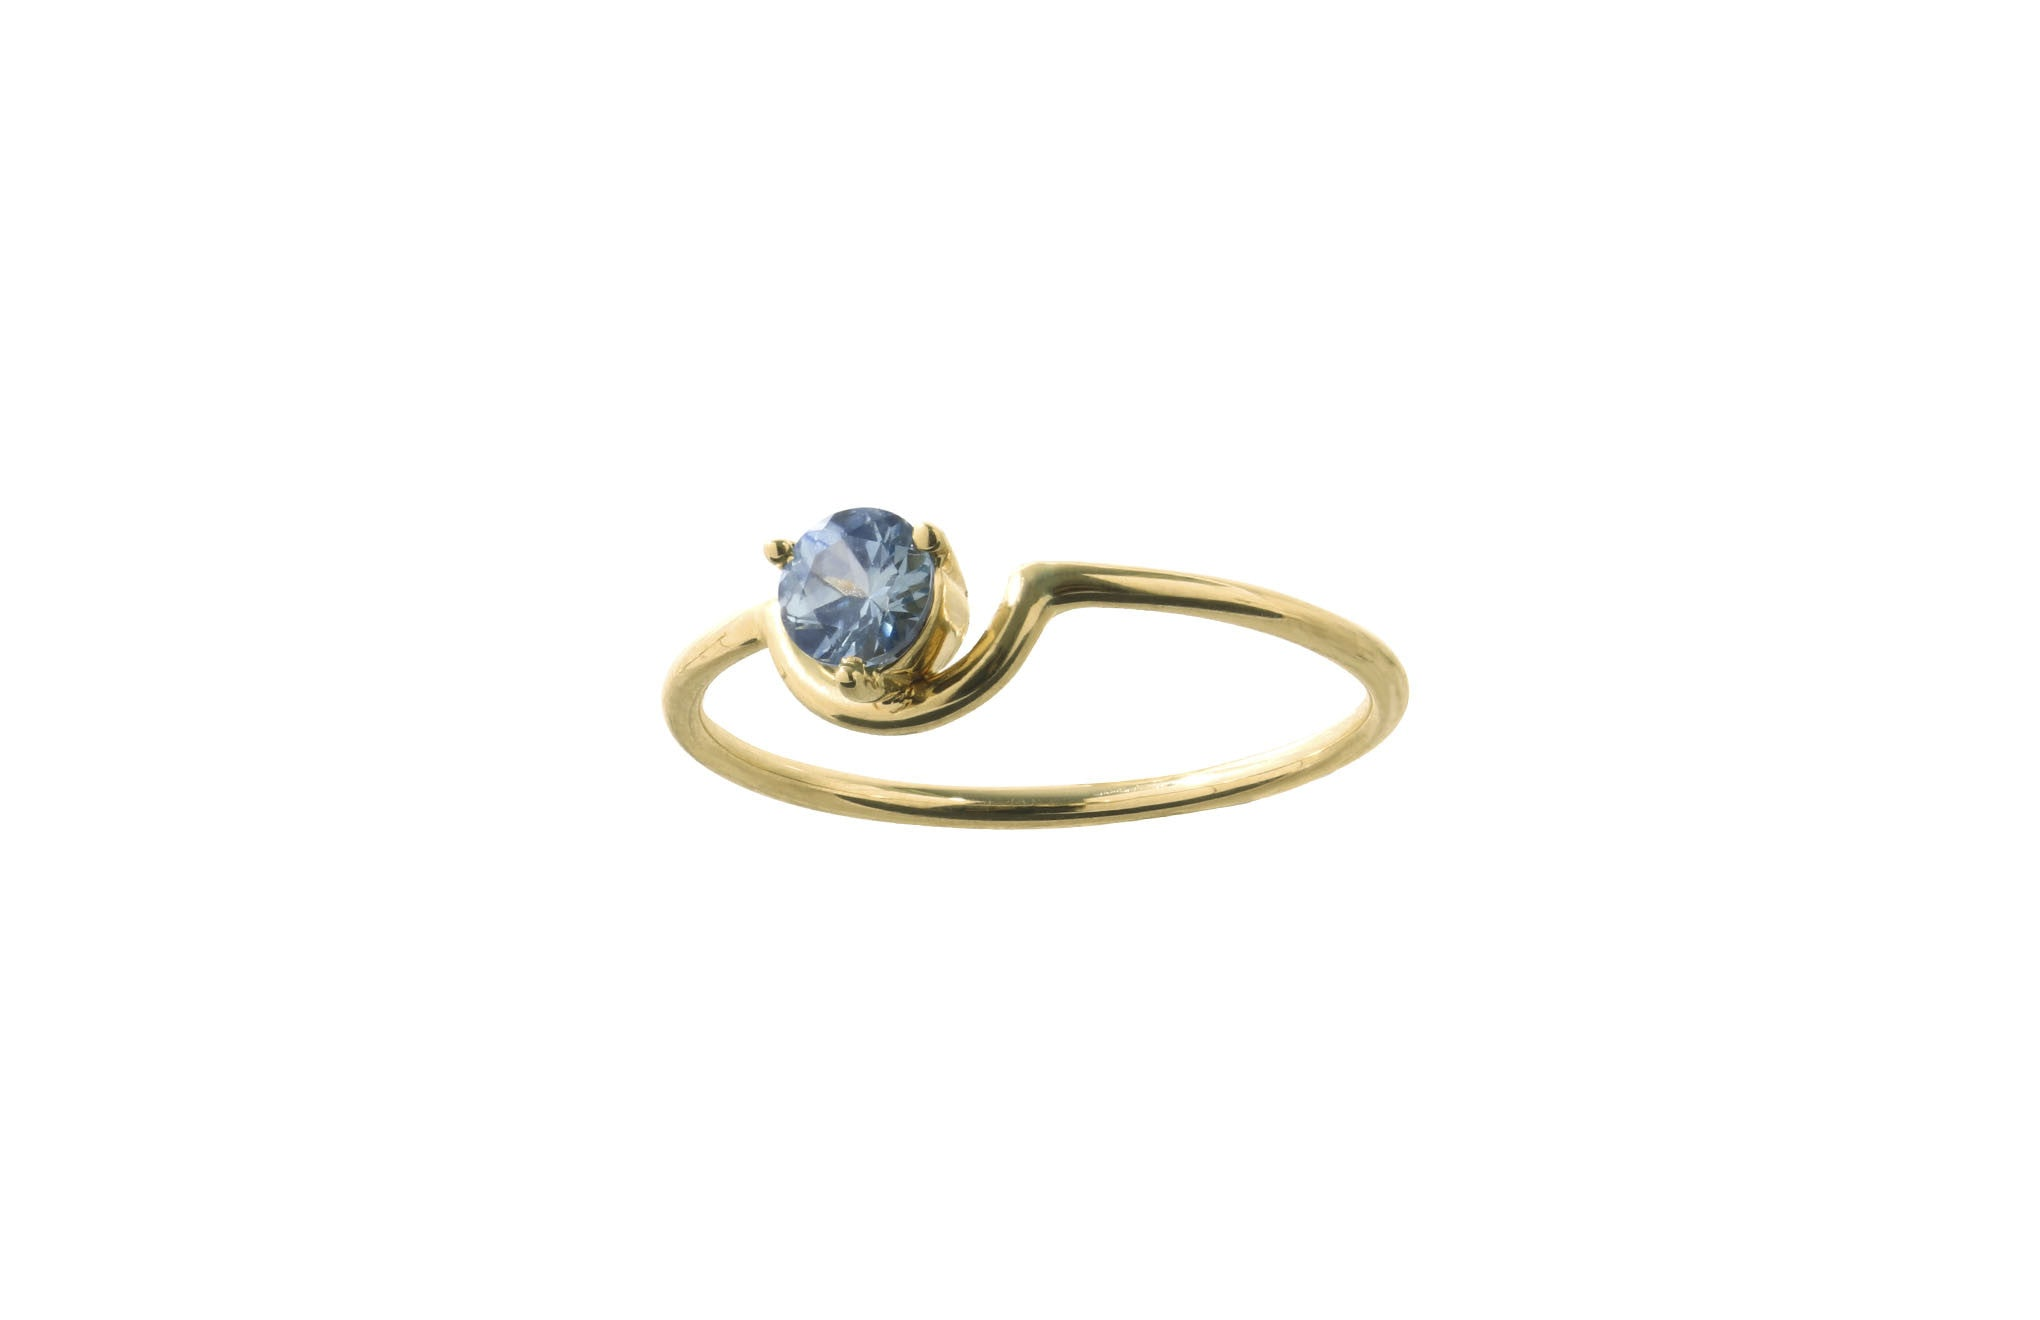 accents gold sapphire ring aqua round ctw pave emitter render with in wedding metal floor half twist white stone blue light shop micro